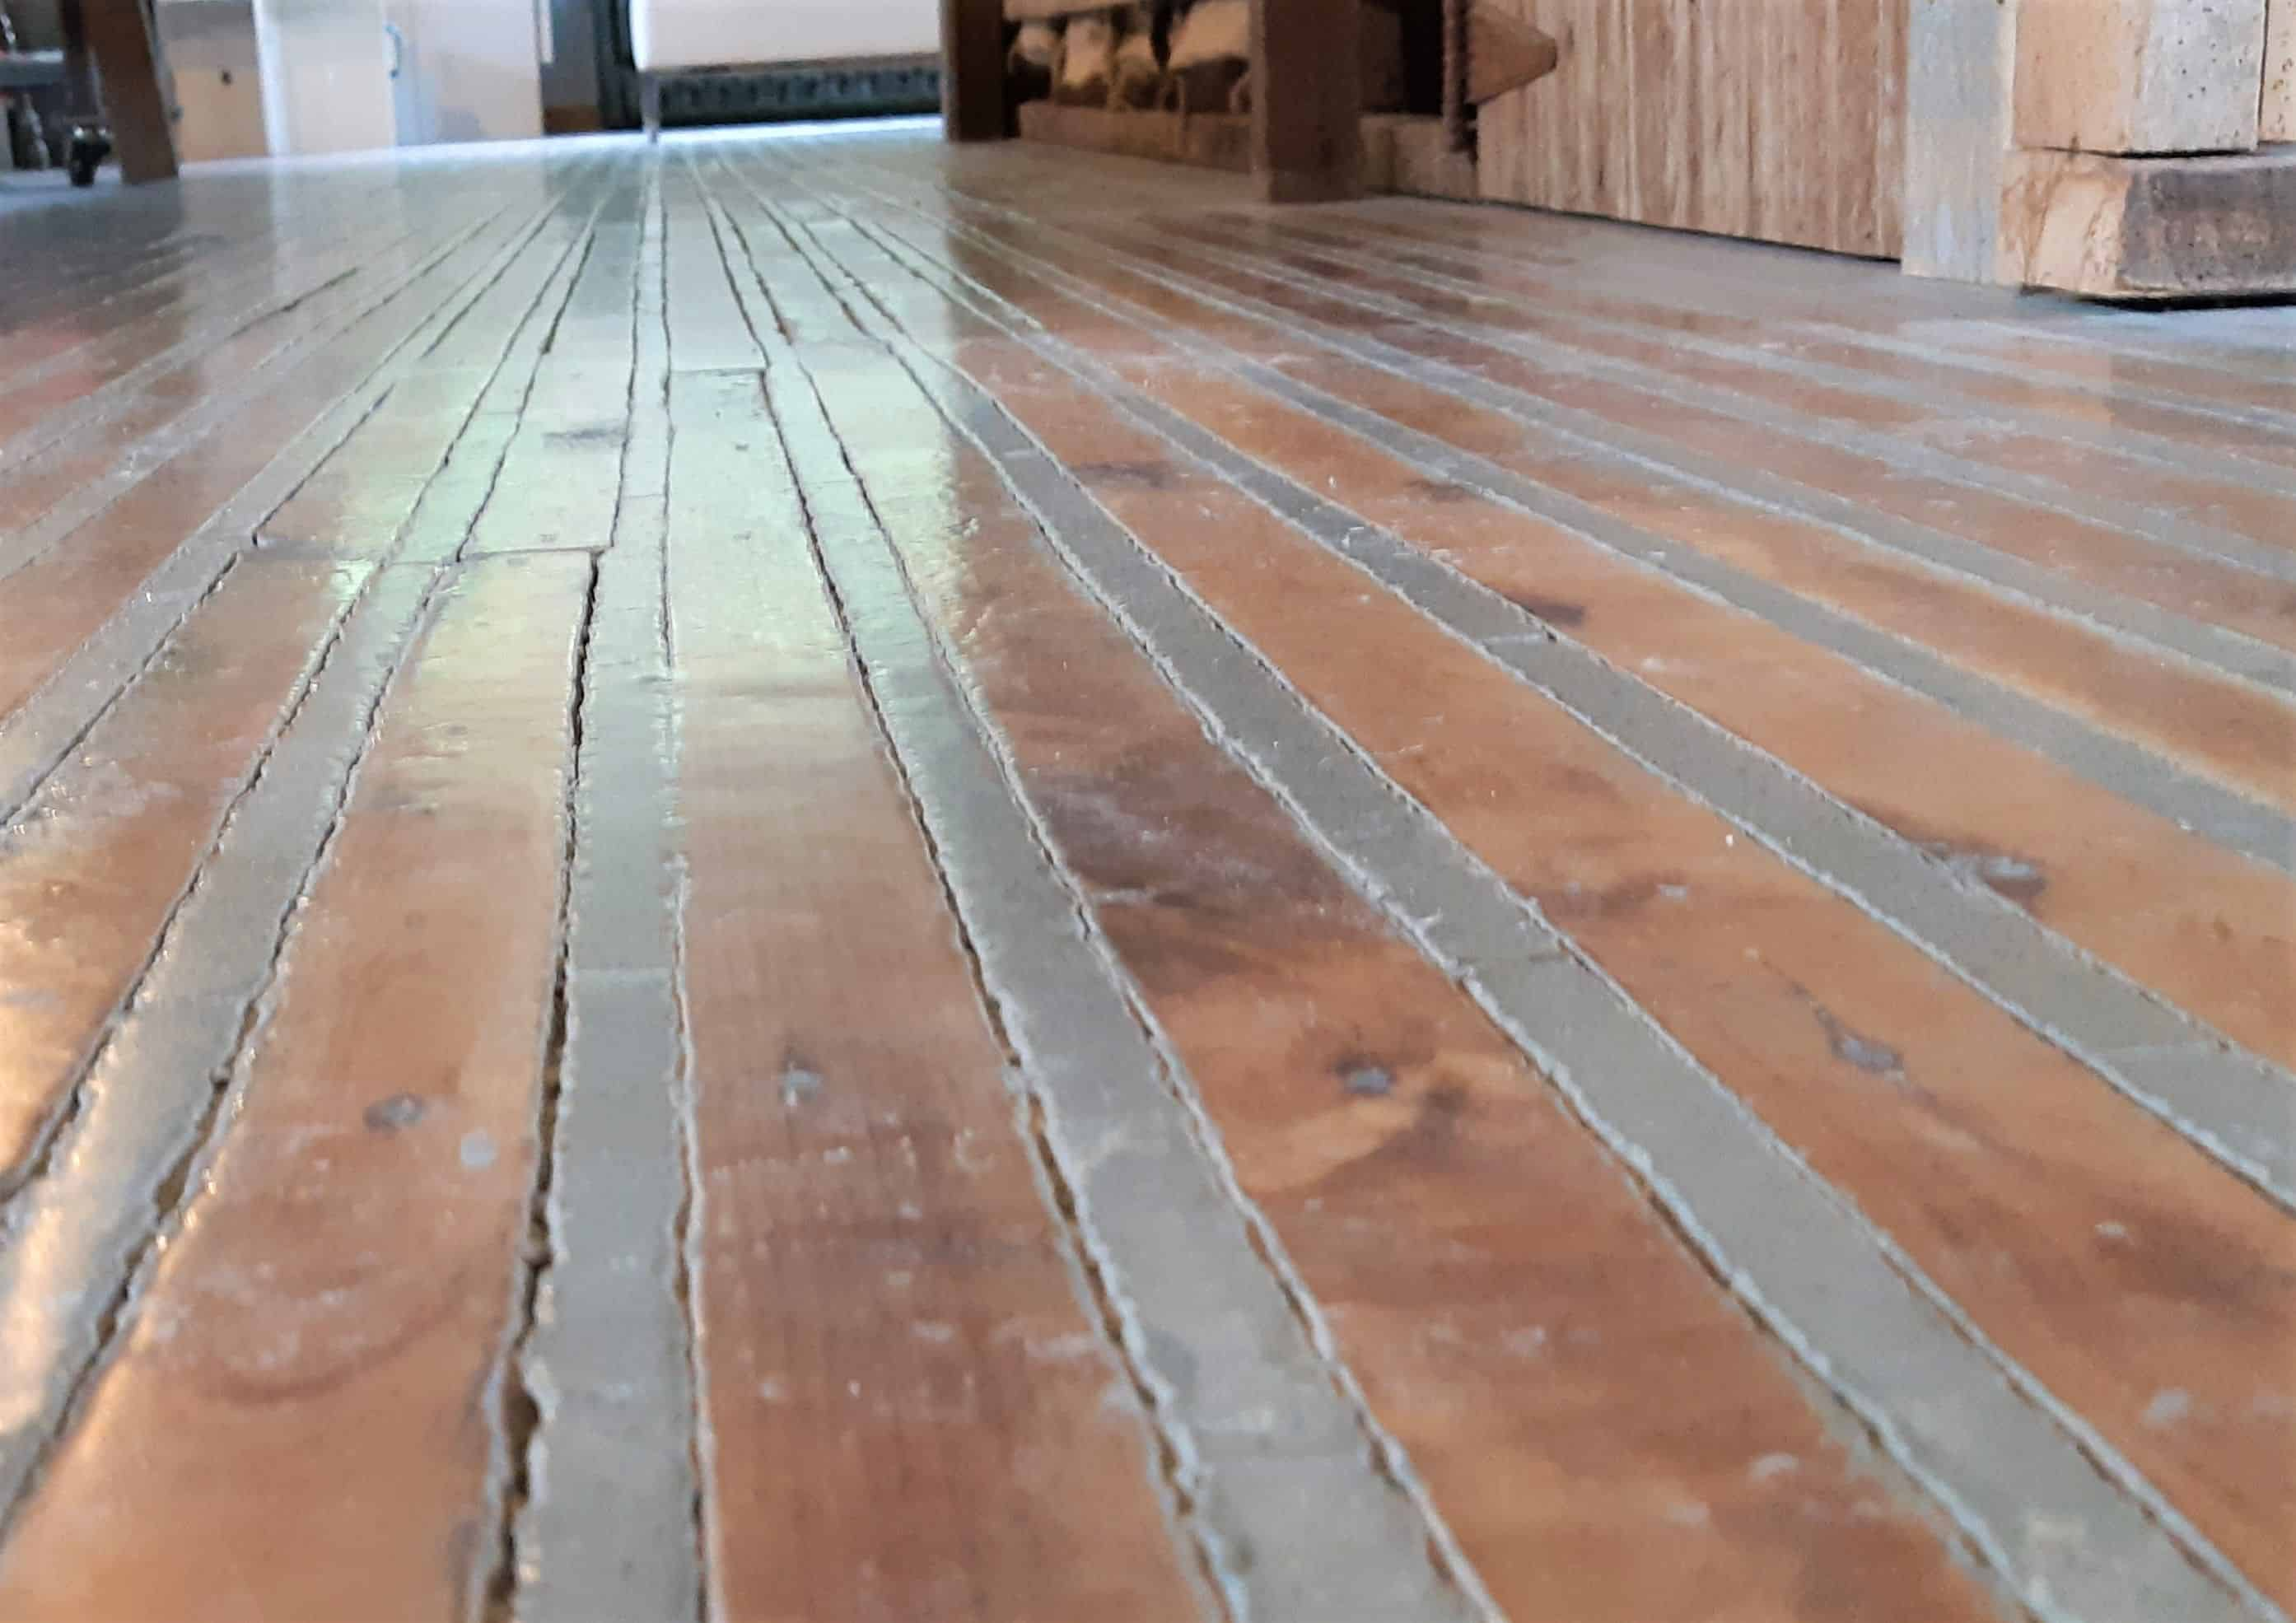 The renovated wood and concrete Buzzstop floor.